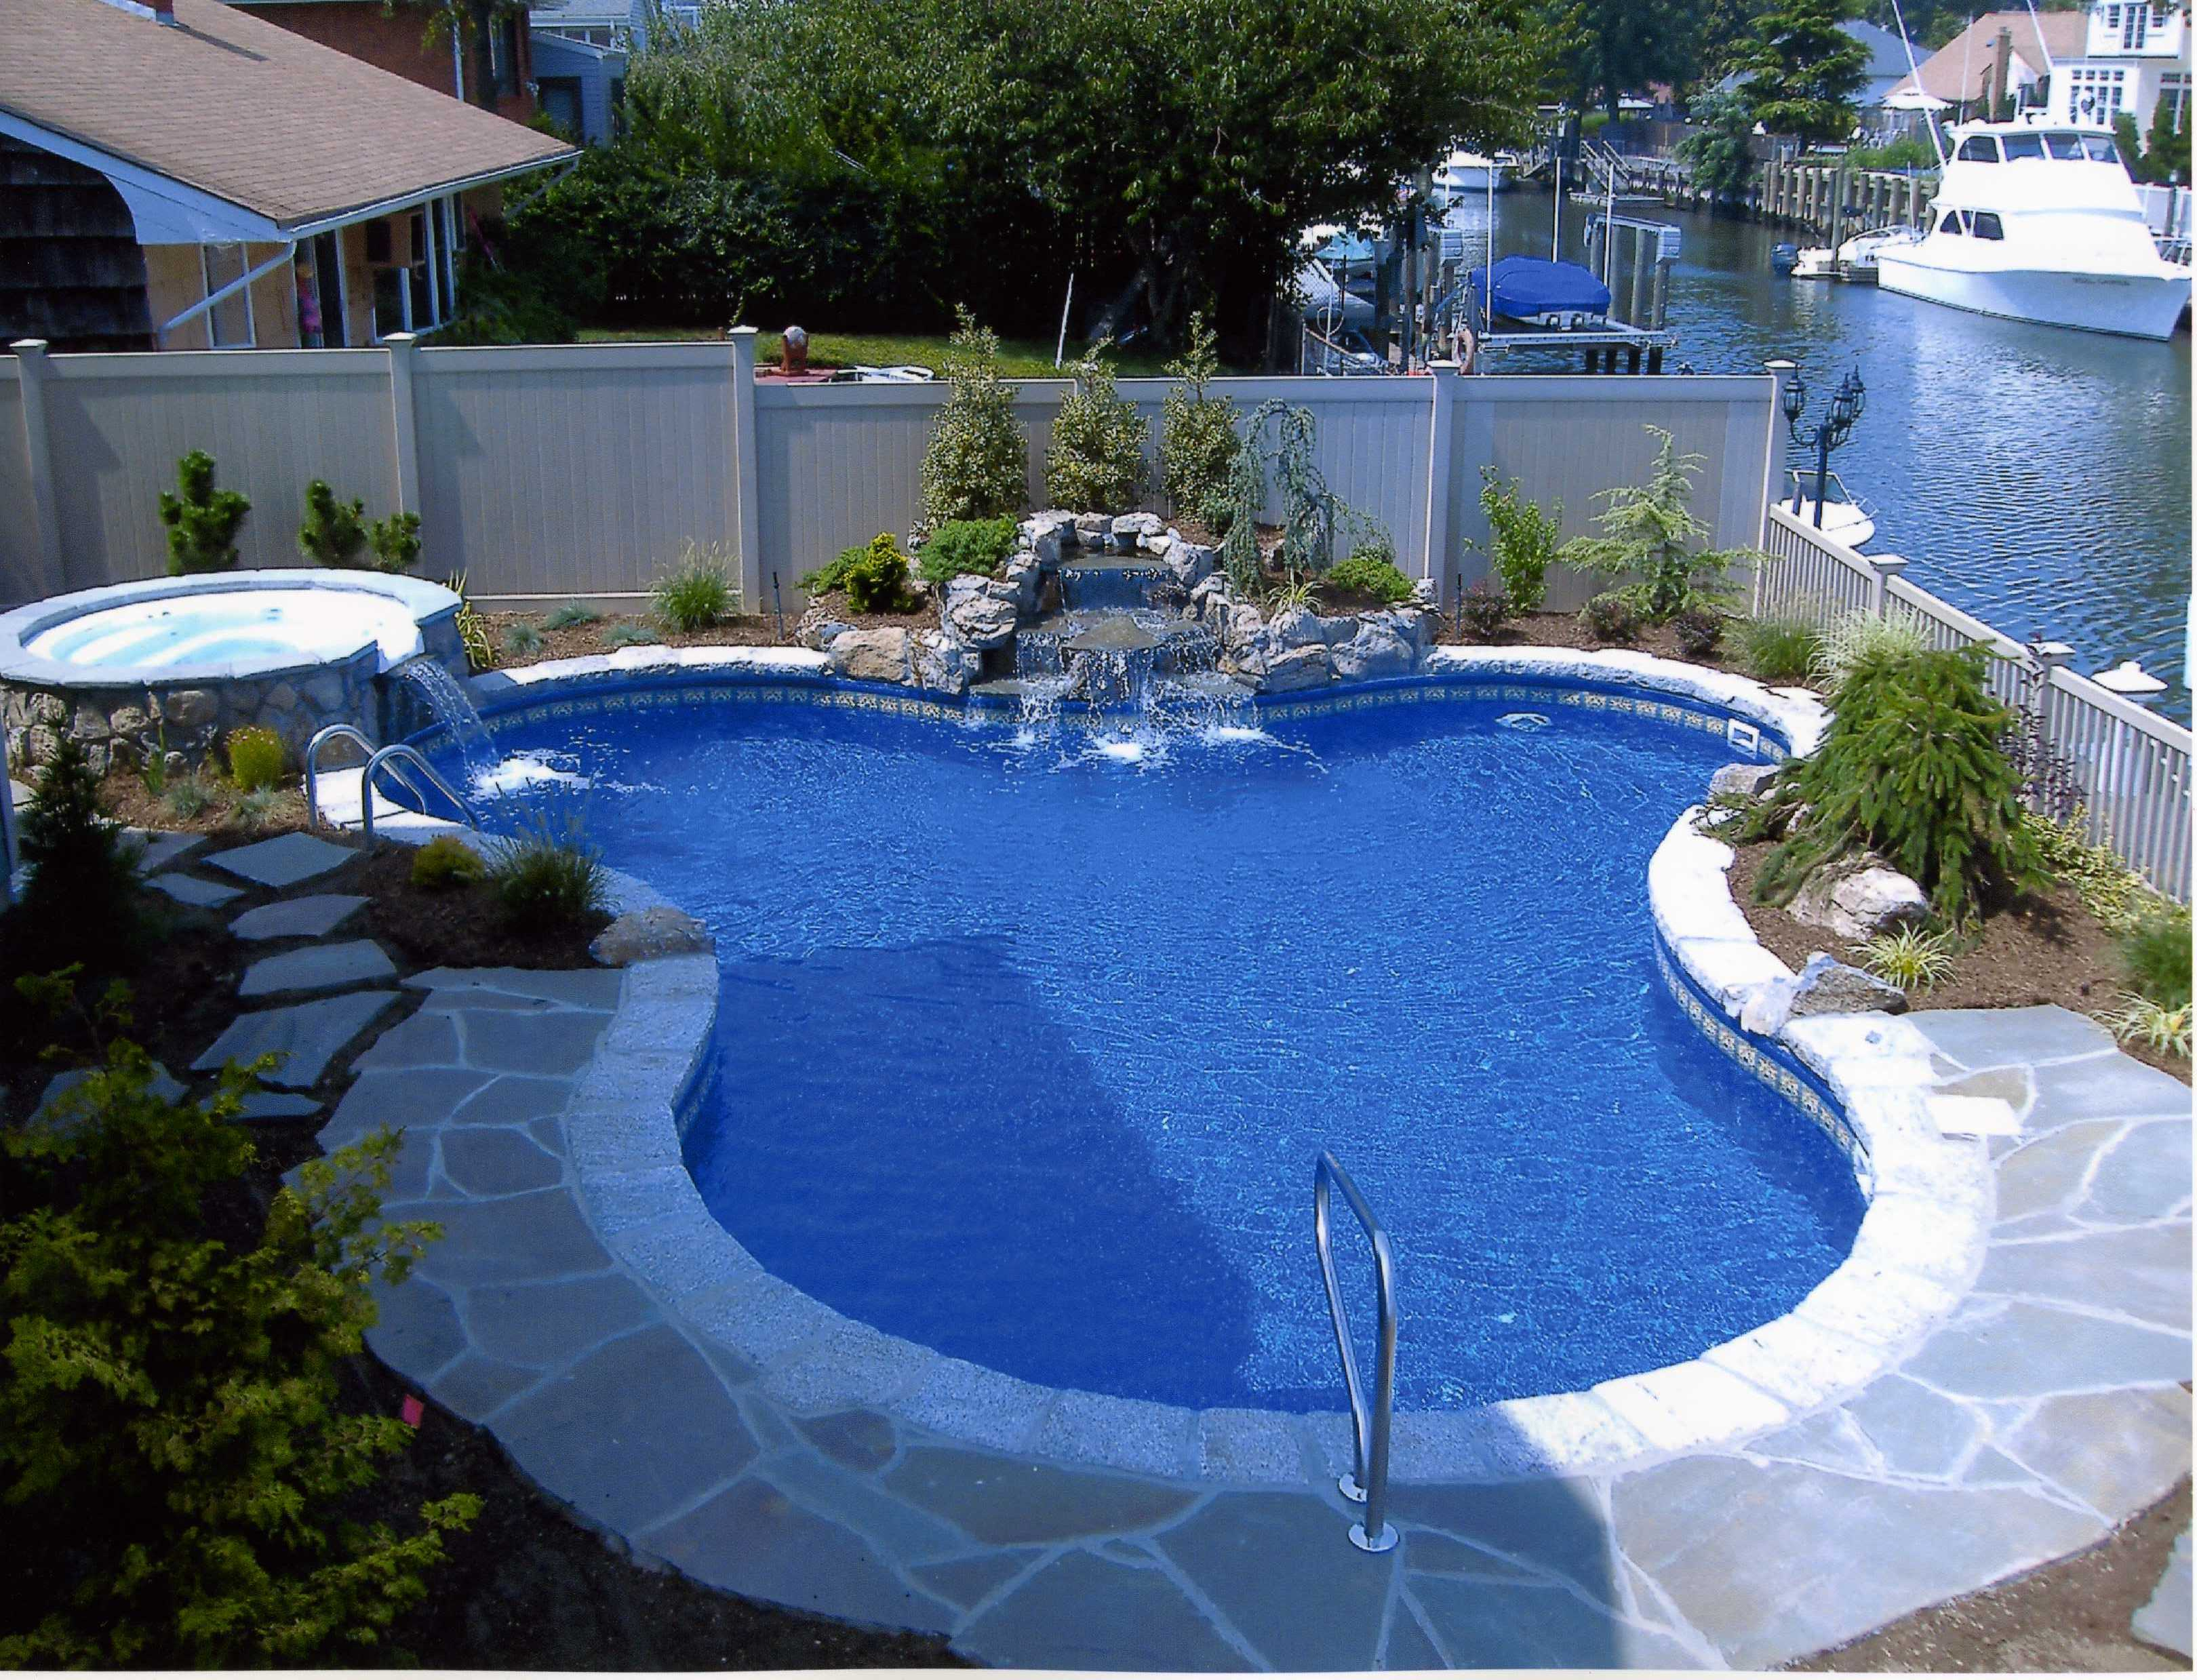 Backyard landscaping ideas swimming pool design Pool design plans